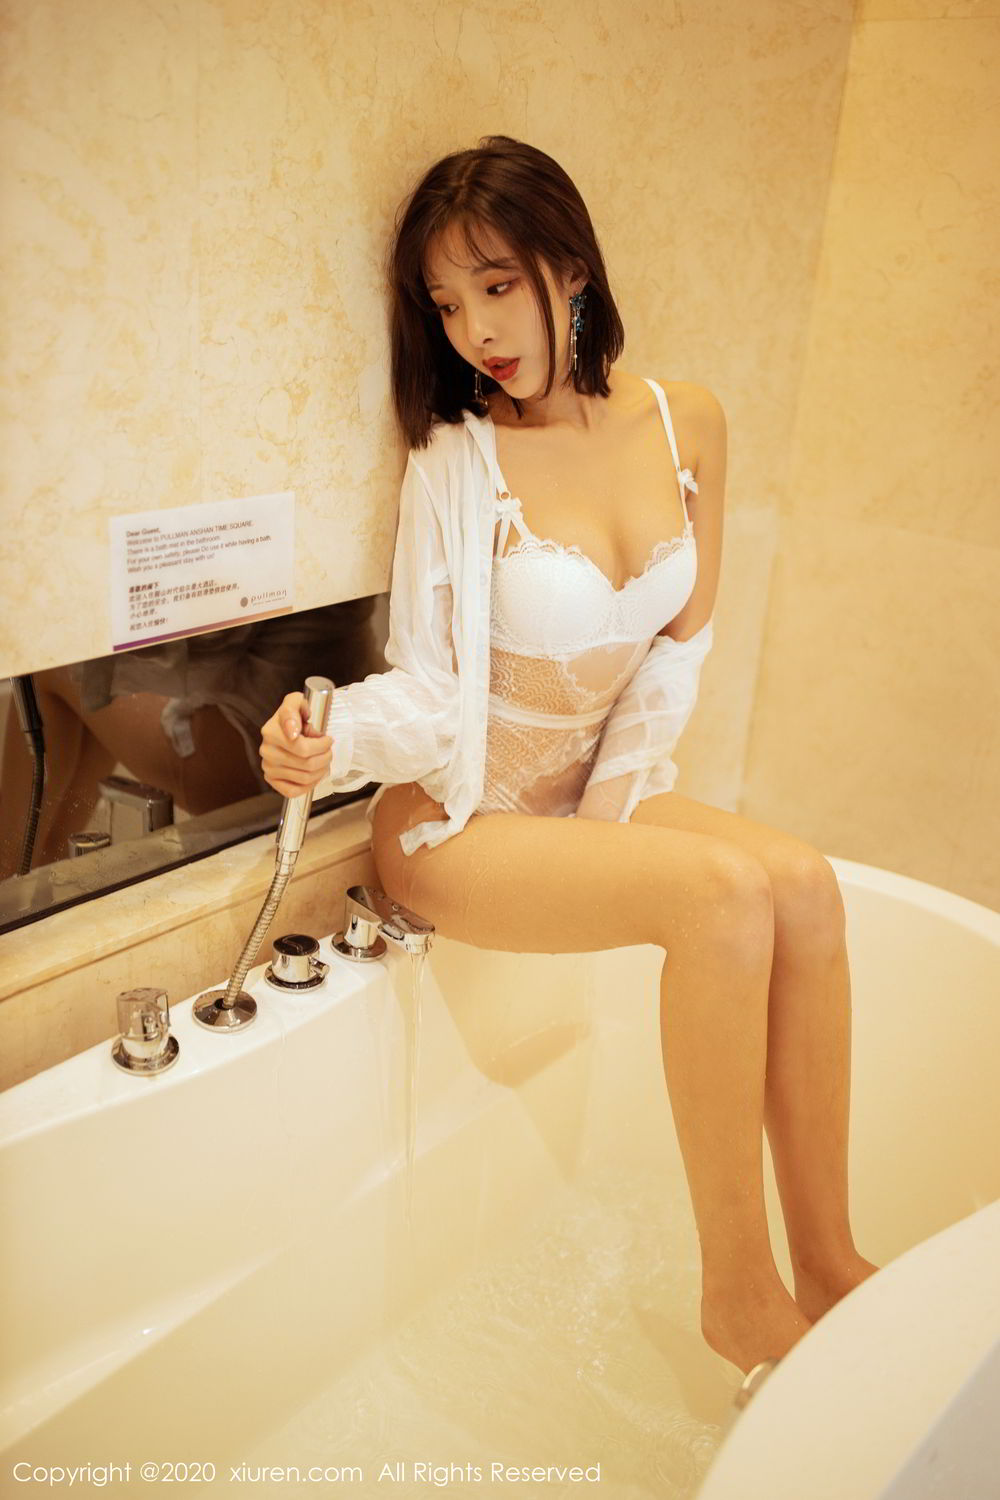 [XiuRen] Vol.2158 Chen Xiao Miao 21P, Bathroom, Chen Xiao Miao, Tall, Wet, Xiuren